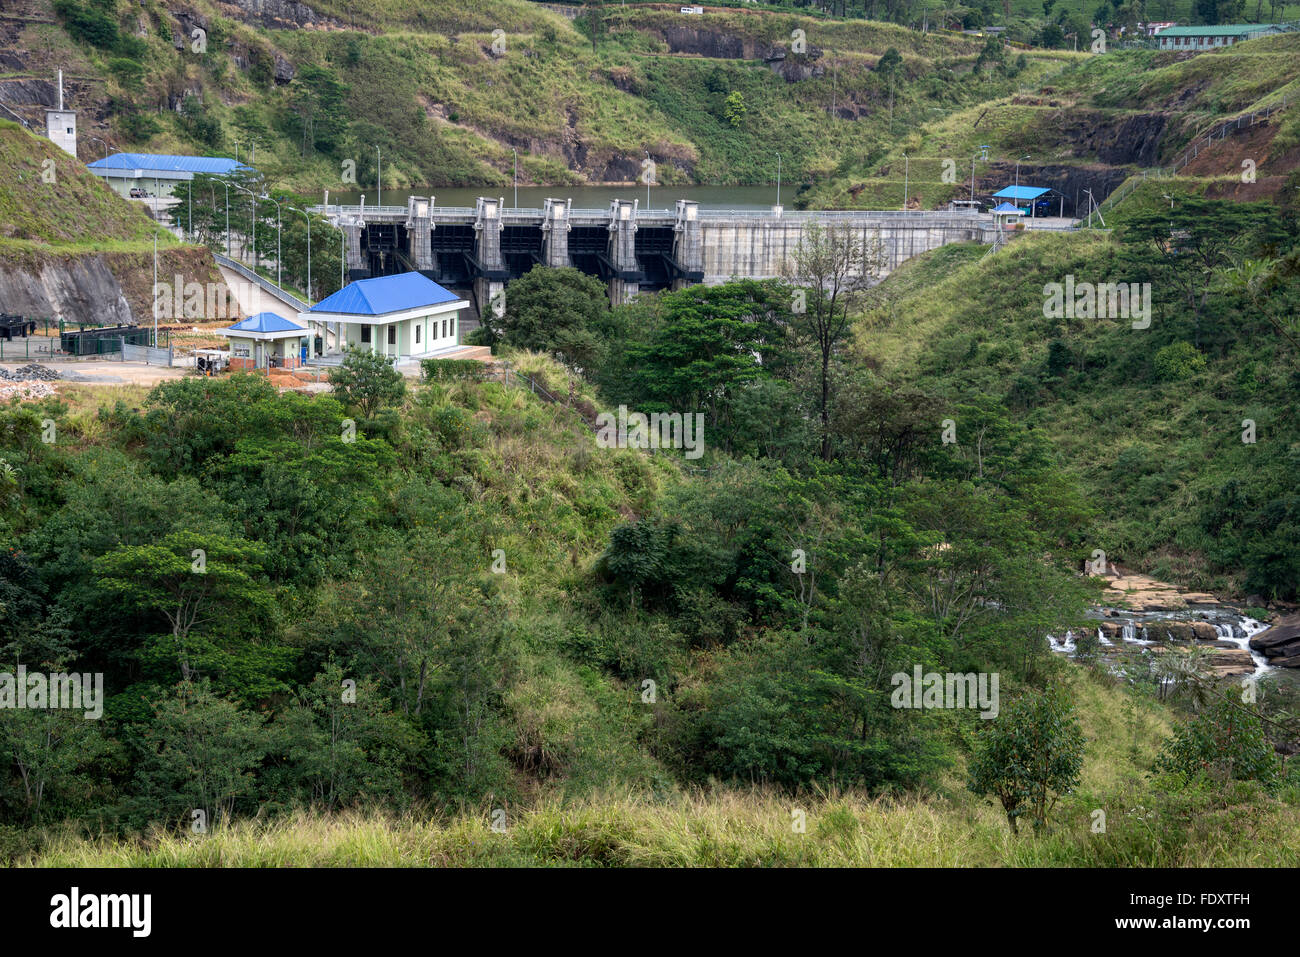 The Upper Kotmale Dam (also known as the Upper Kotmale Hydropower Project, or UKHP is located in Talawakele, Stock Photo